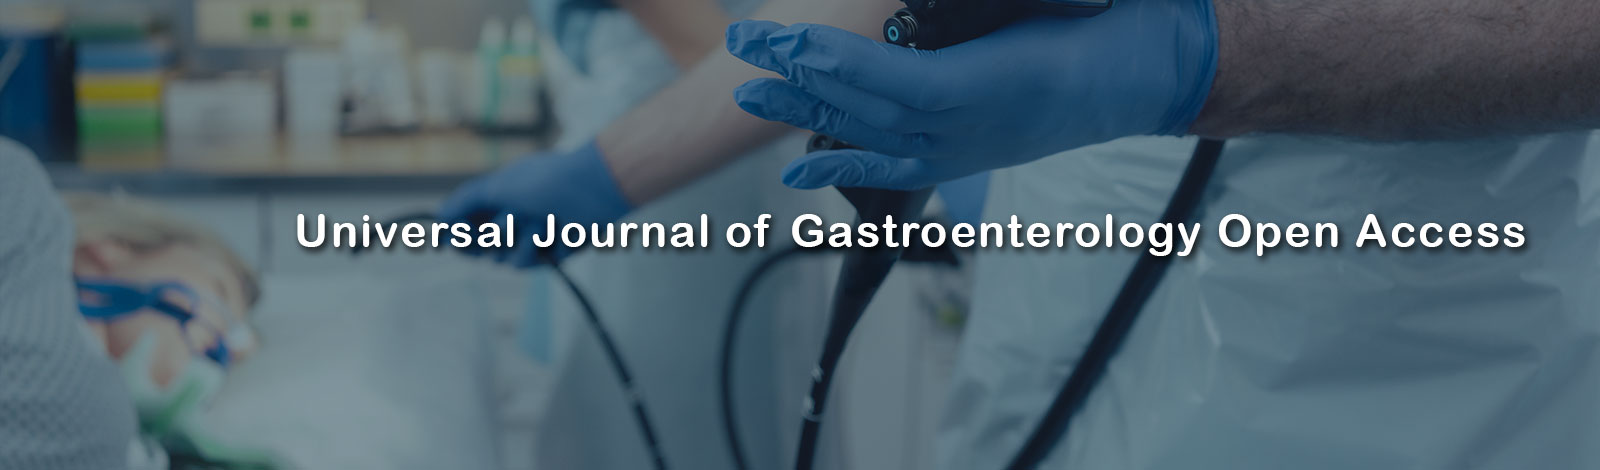 Universal Journal of Gastroenterology Open Access